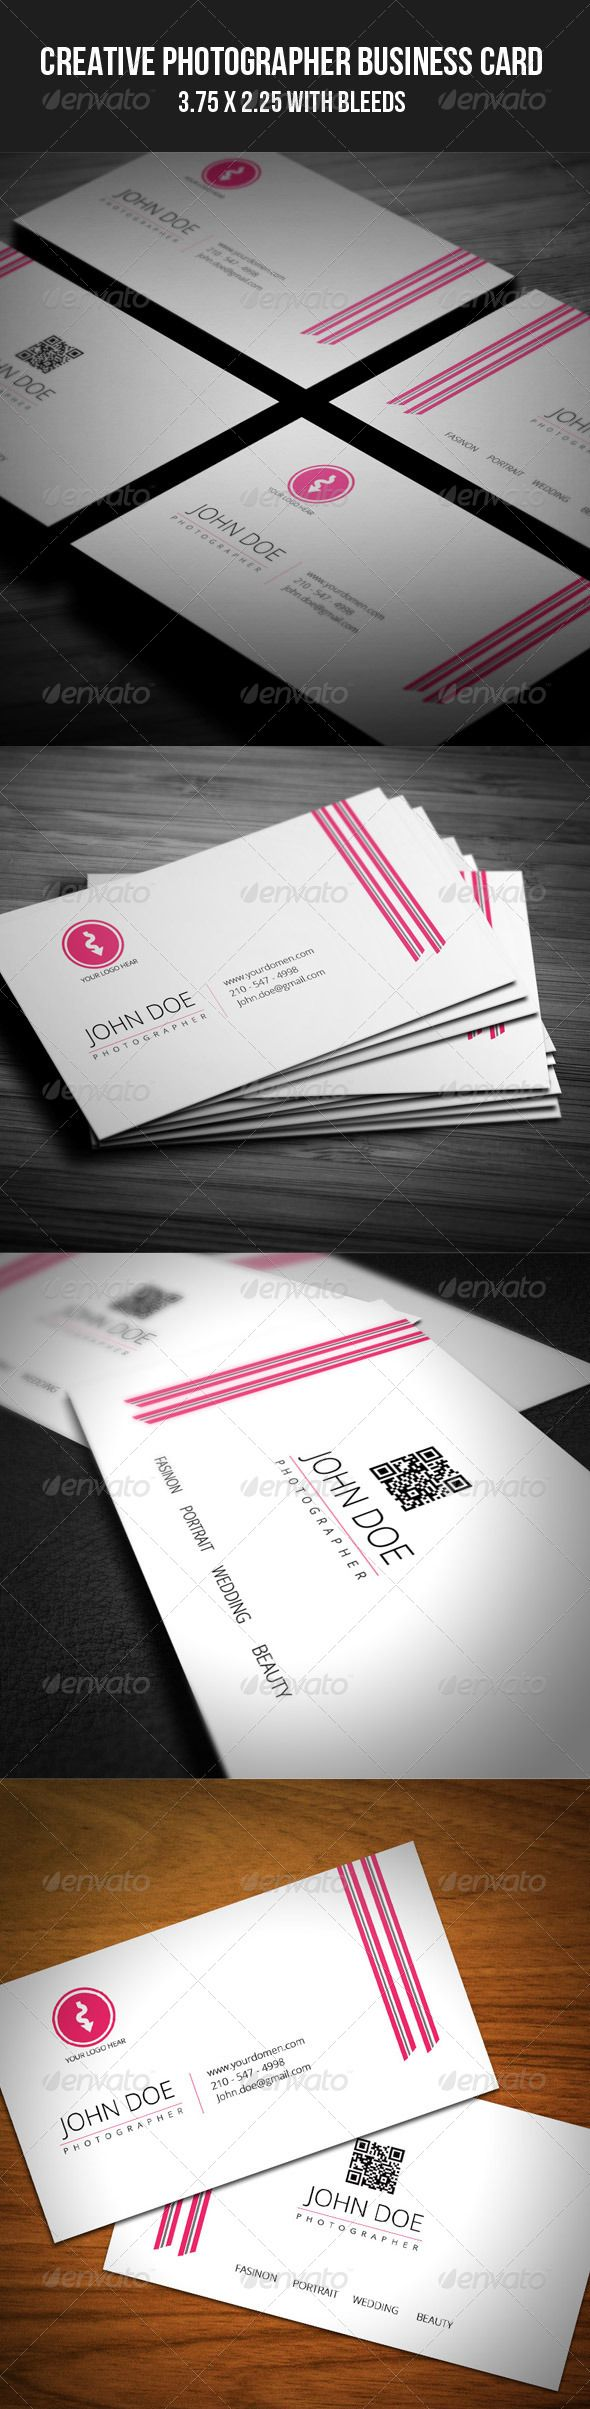 Best Modern Business Card Template Images On Pinterest - 2 x 35 business card template